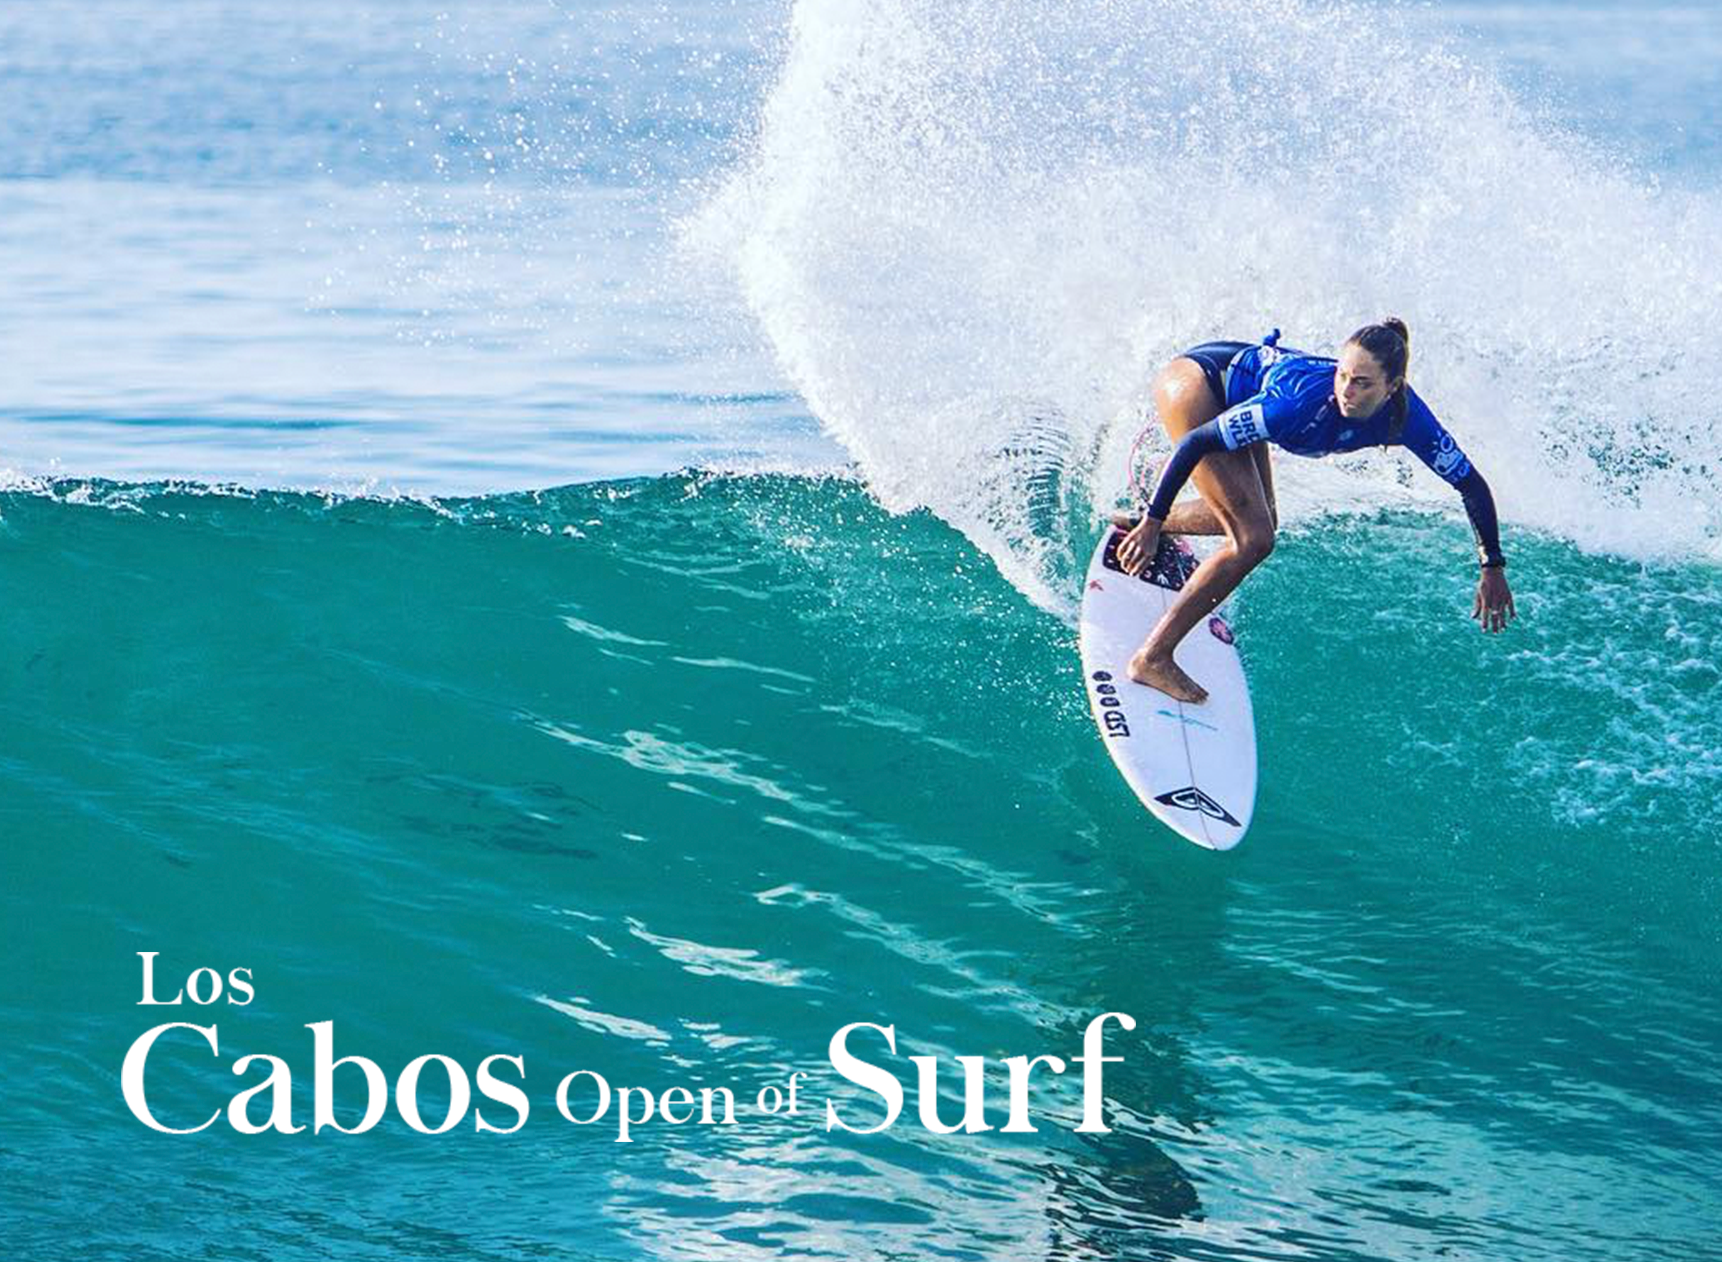 LOS CABOS OPEN OF SURF 2018 e288bcd597c4